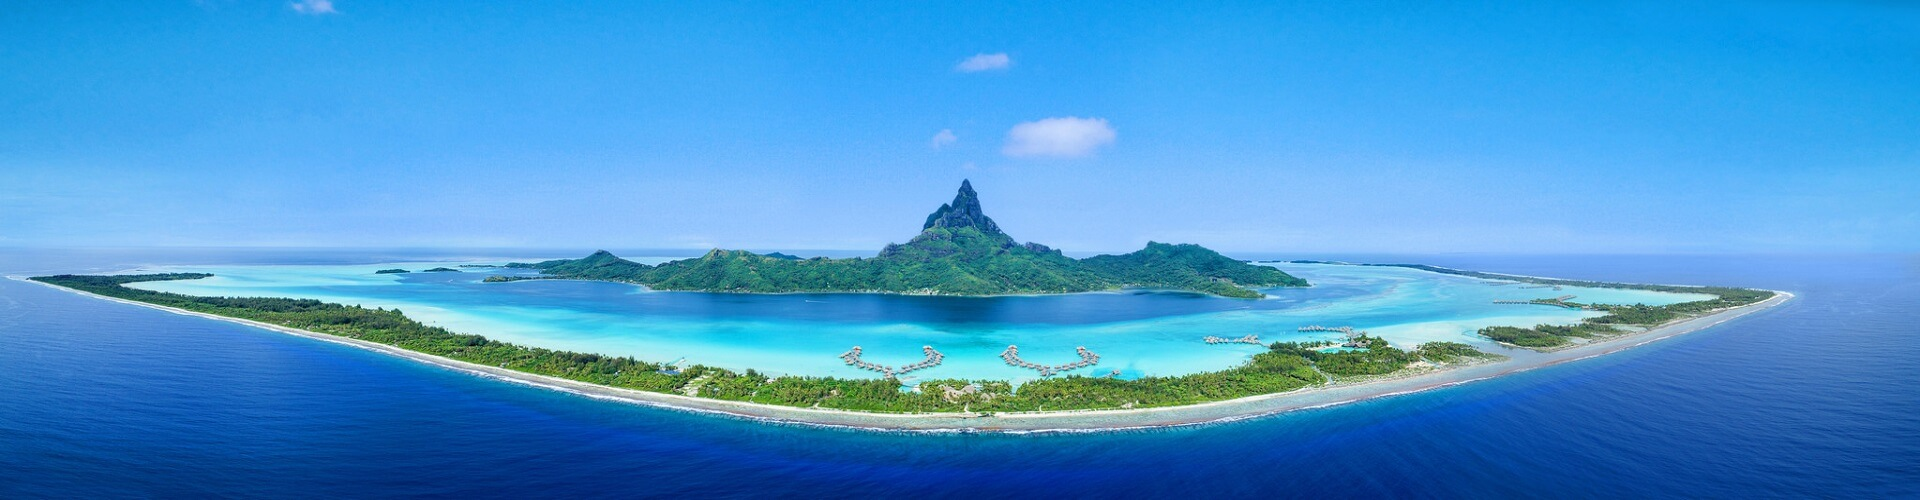 Photo aérienne de Bora Bora